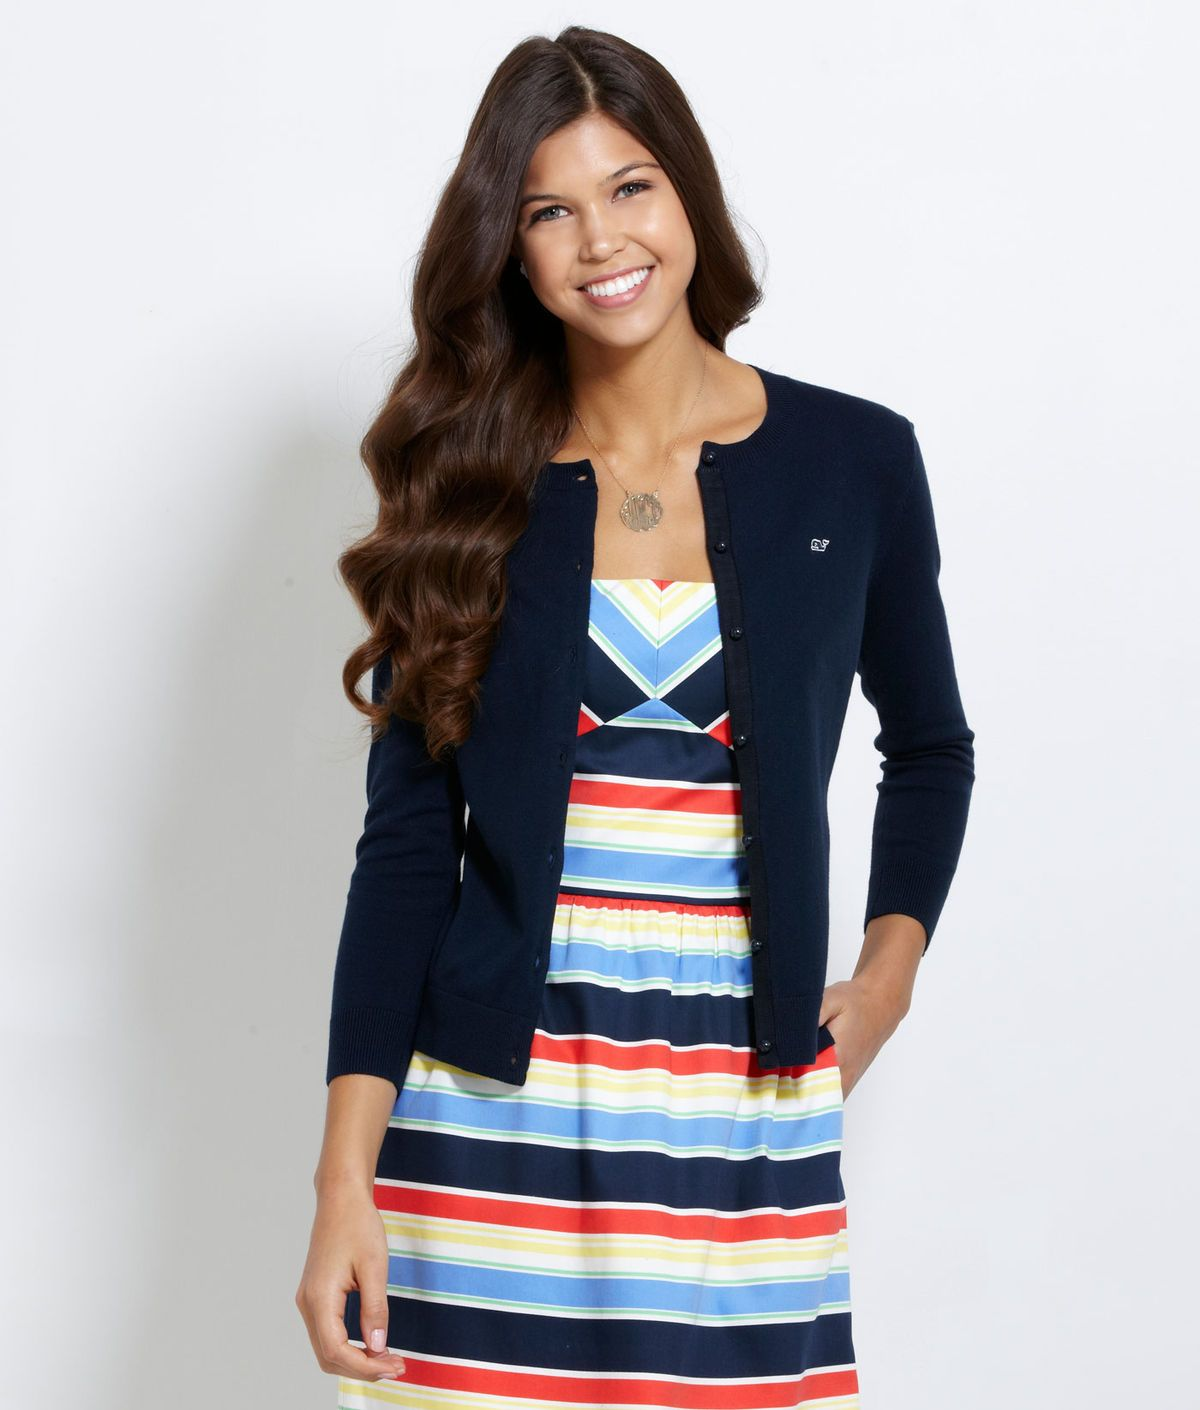 Vineyard Vines Casey Cardigan in Vineyard Navy | Hamptons Summer ...